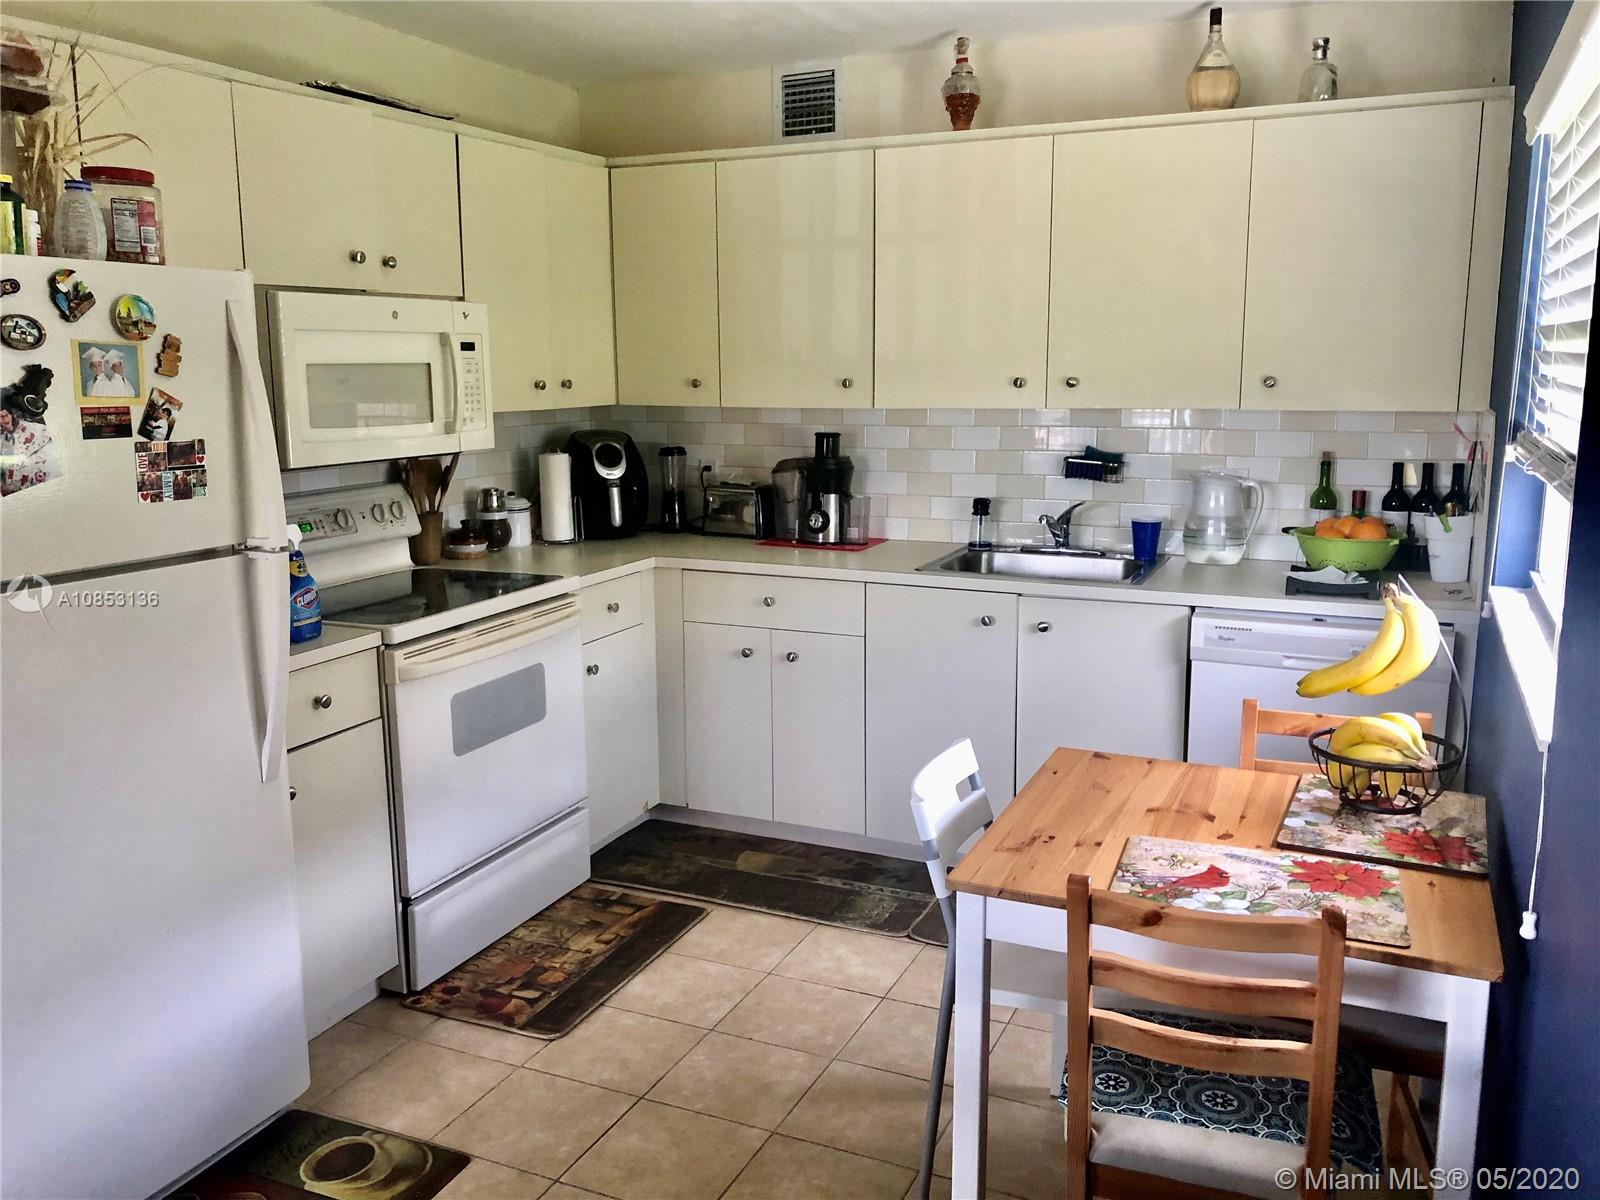 301 SW 135th Ave # 118C, Pembroke Pines, Florida 33027, 2 Bedrooms Bedrooms, ,2 BathroomsBathrooms,Residential,For Sale,301 SW 135th Ave # 118C,A10853136